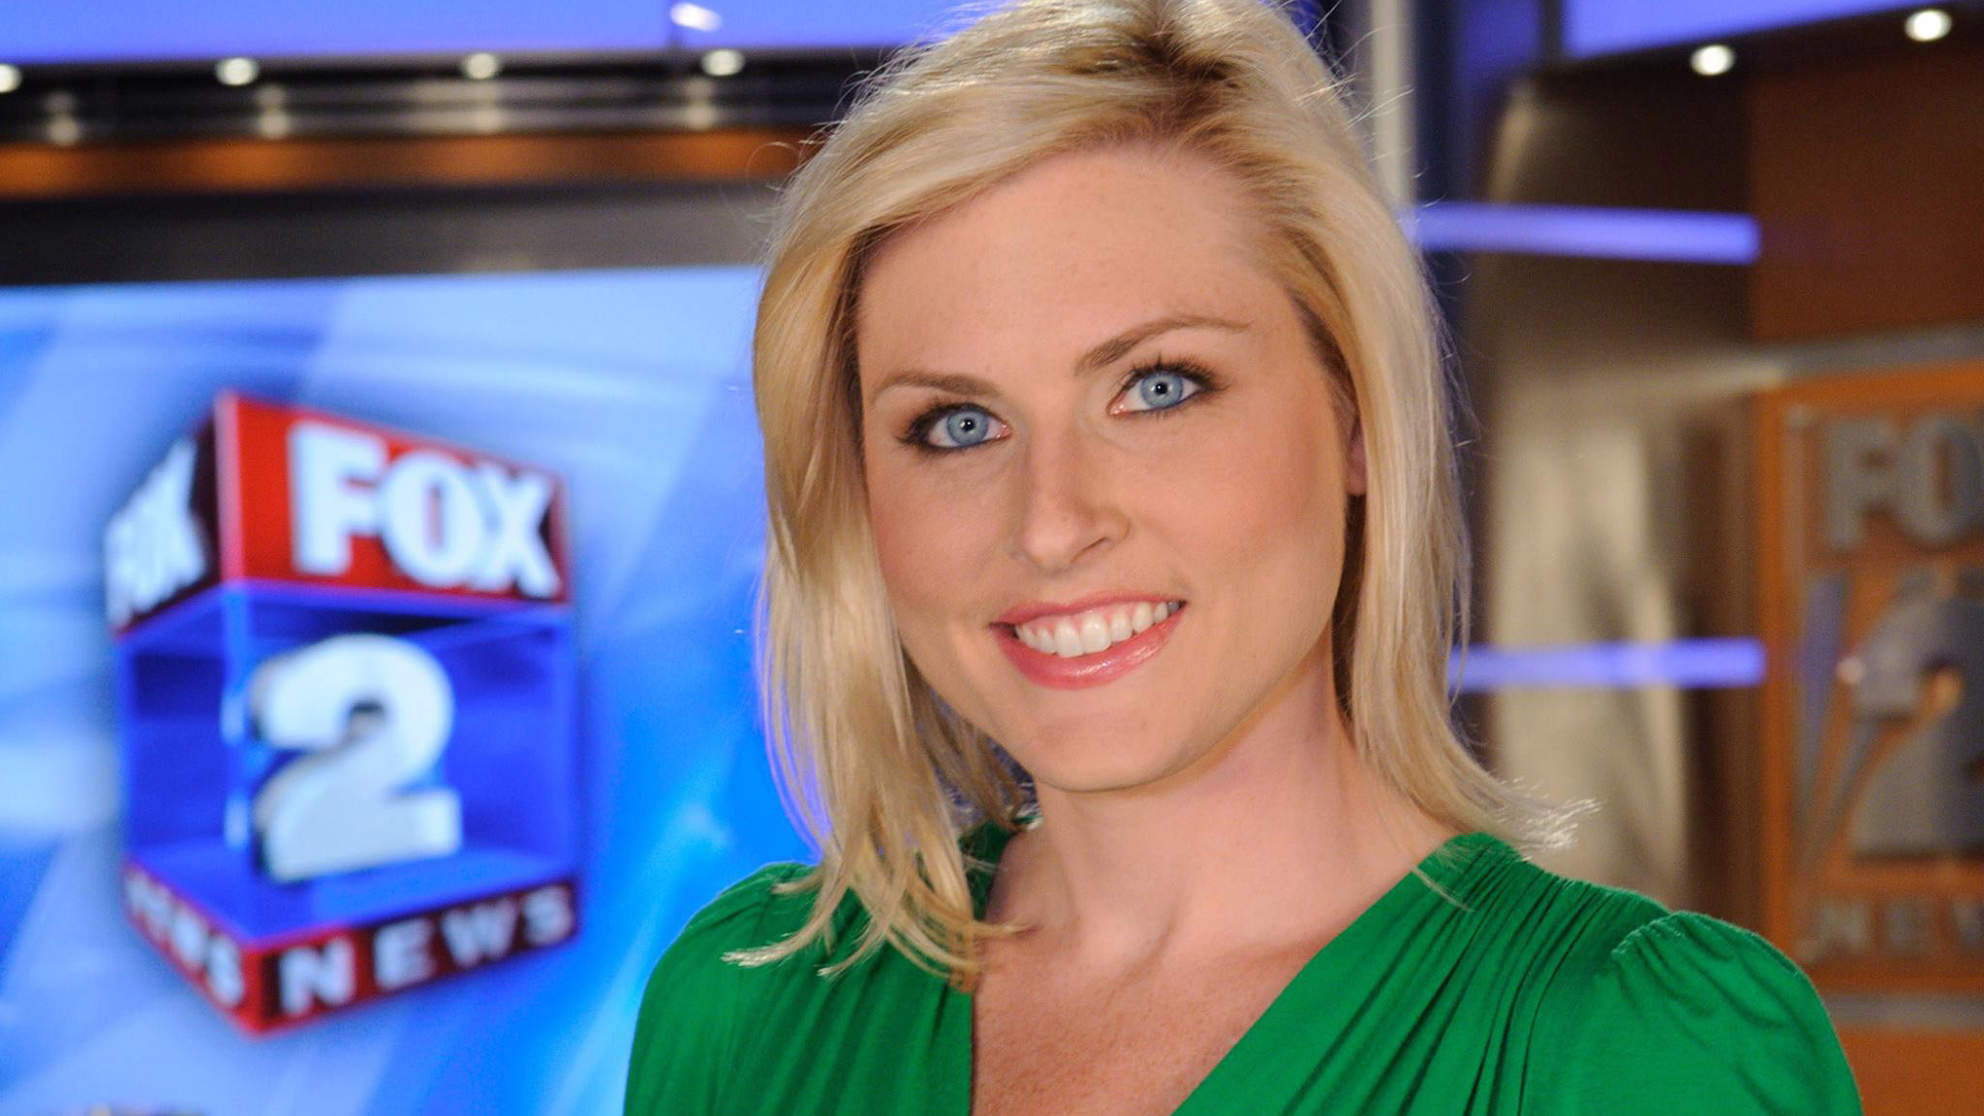 Husband of Meteorologist Jessica Starr Says Eye Surgery Complications 'Triggered' Her Suicide